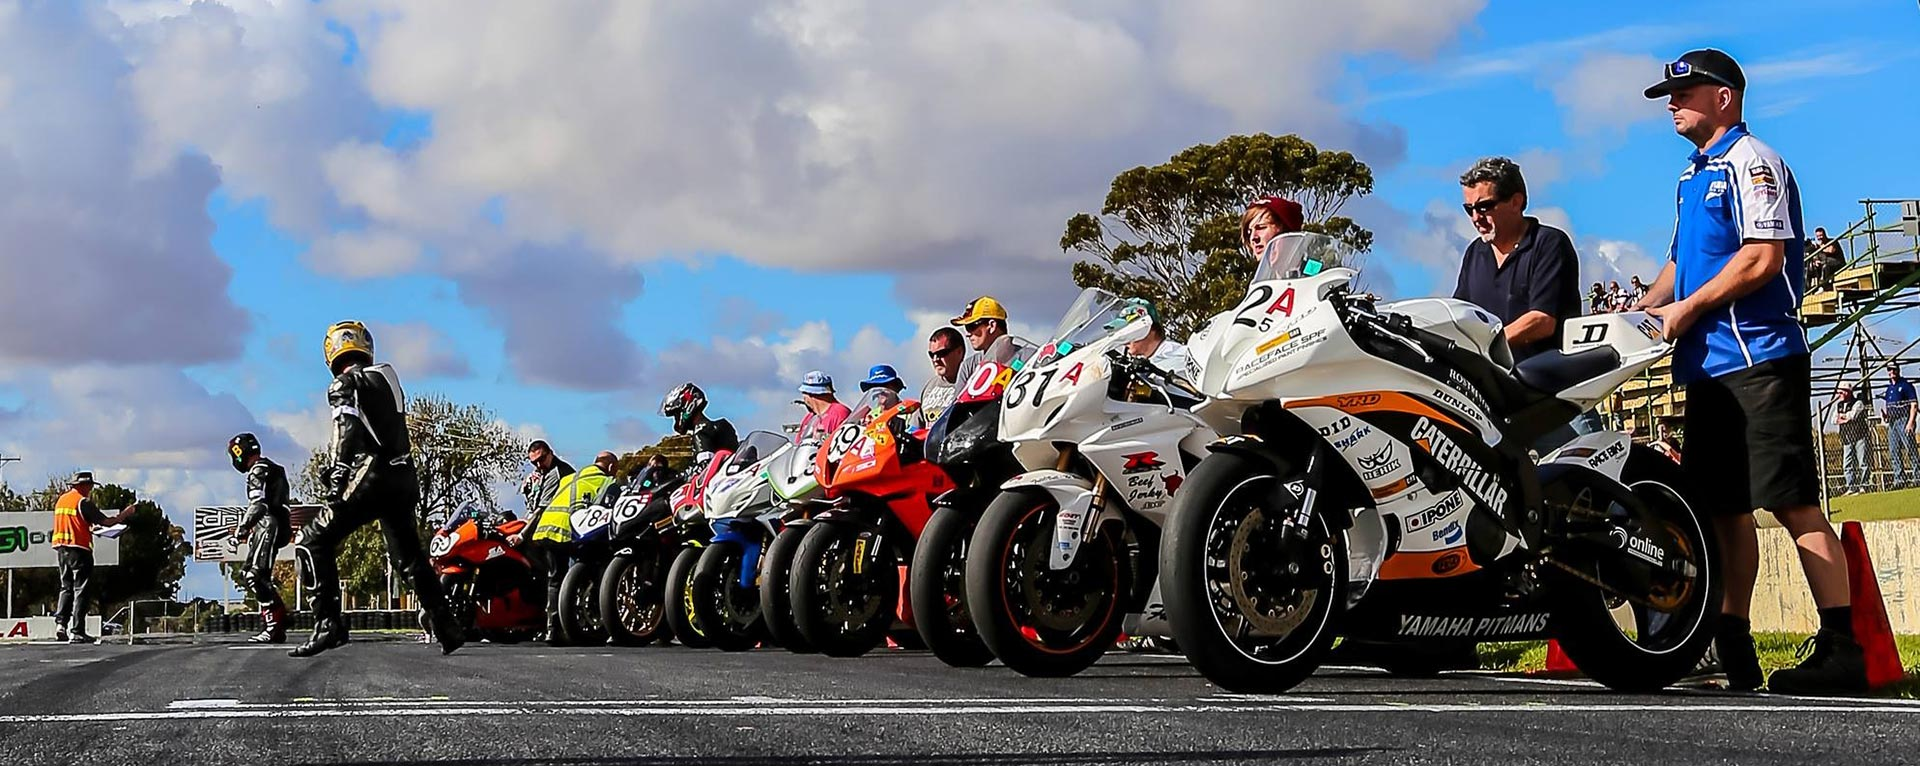 Adelaide 3 Hour race hosted by the Phoenix Motorcycle Club of SA